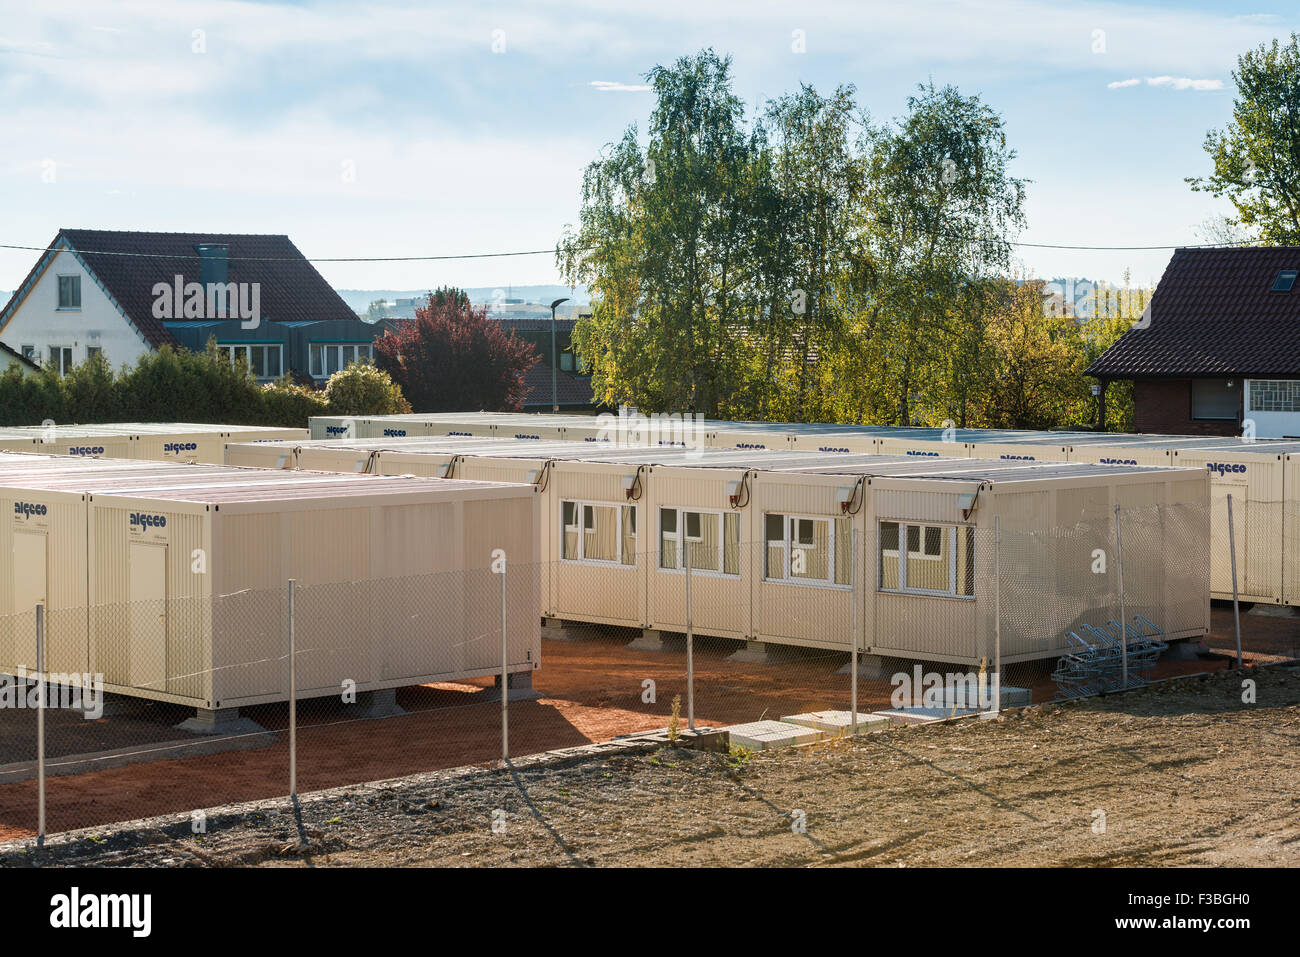 Scharnhausen, Germany - October 3, 2015: A temporary container city is set up on a former tennis ground in order - Stock Image